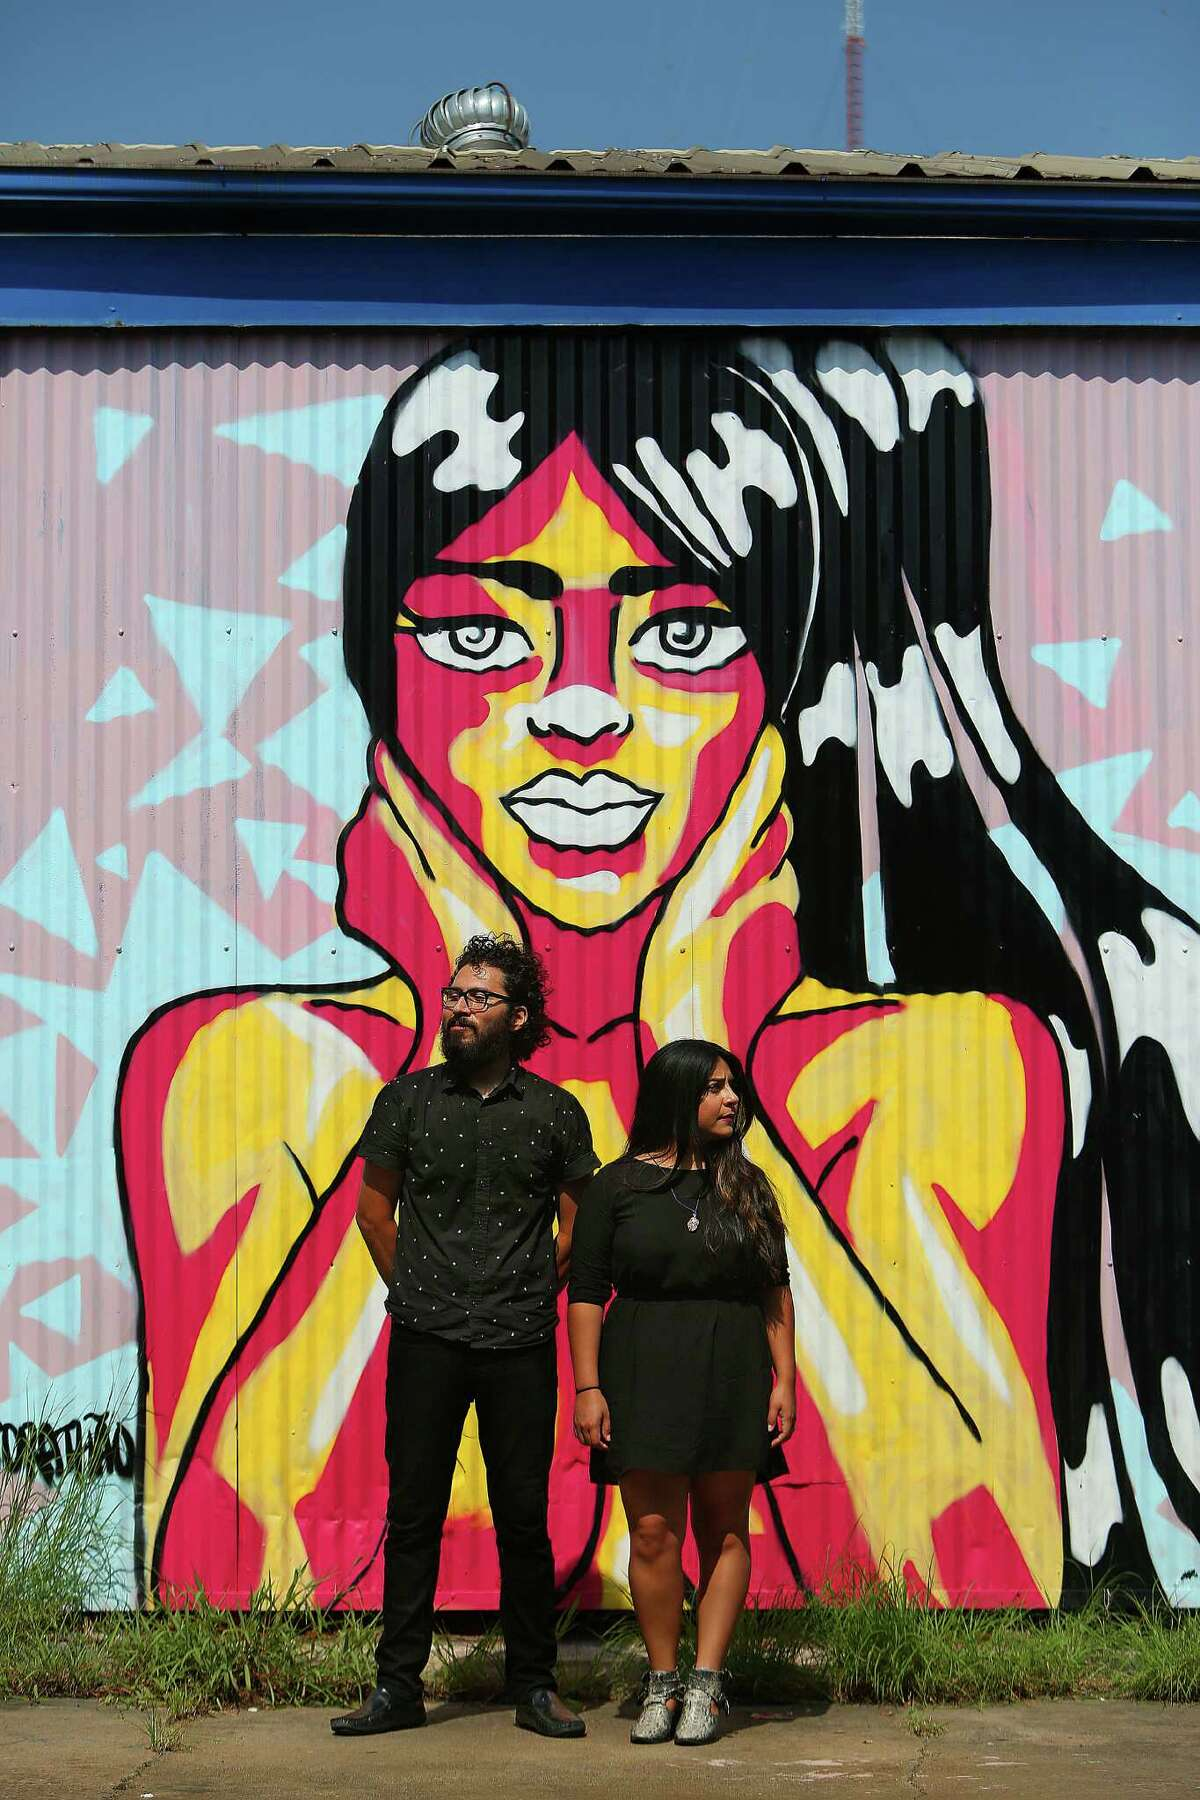 Elizabeth Salazar and Mario A. Rodriguez, co-founders of the agency Wonky Power, have built a studio and label in east Houston, Monday, Sept. 19, 2016. Their space combines office and studio space with performance and rehearsal spaces for bands. ( Mark Mulligan / Houston Chronicle )